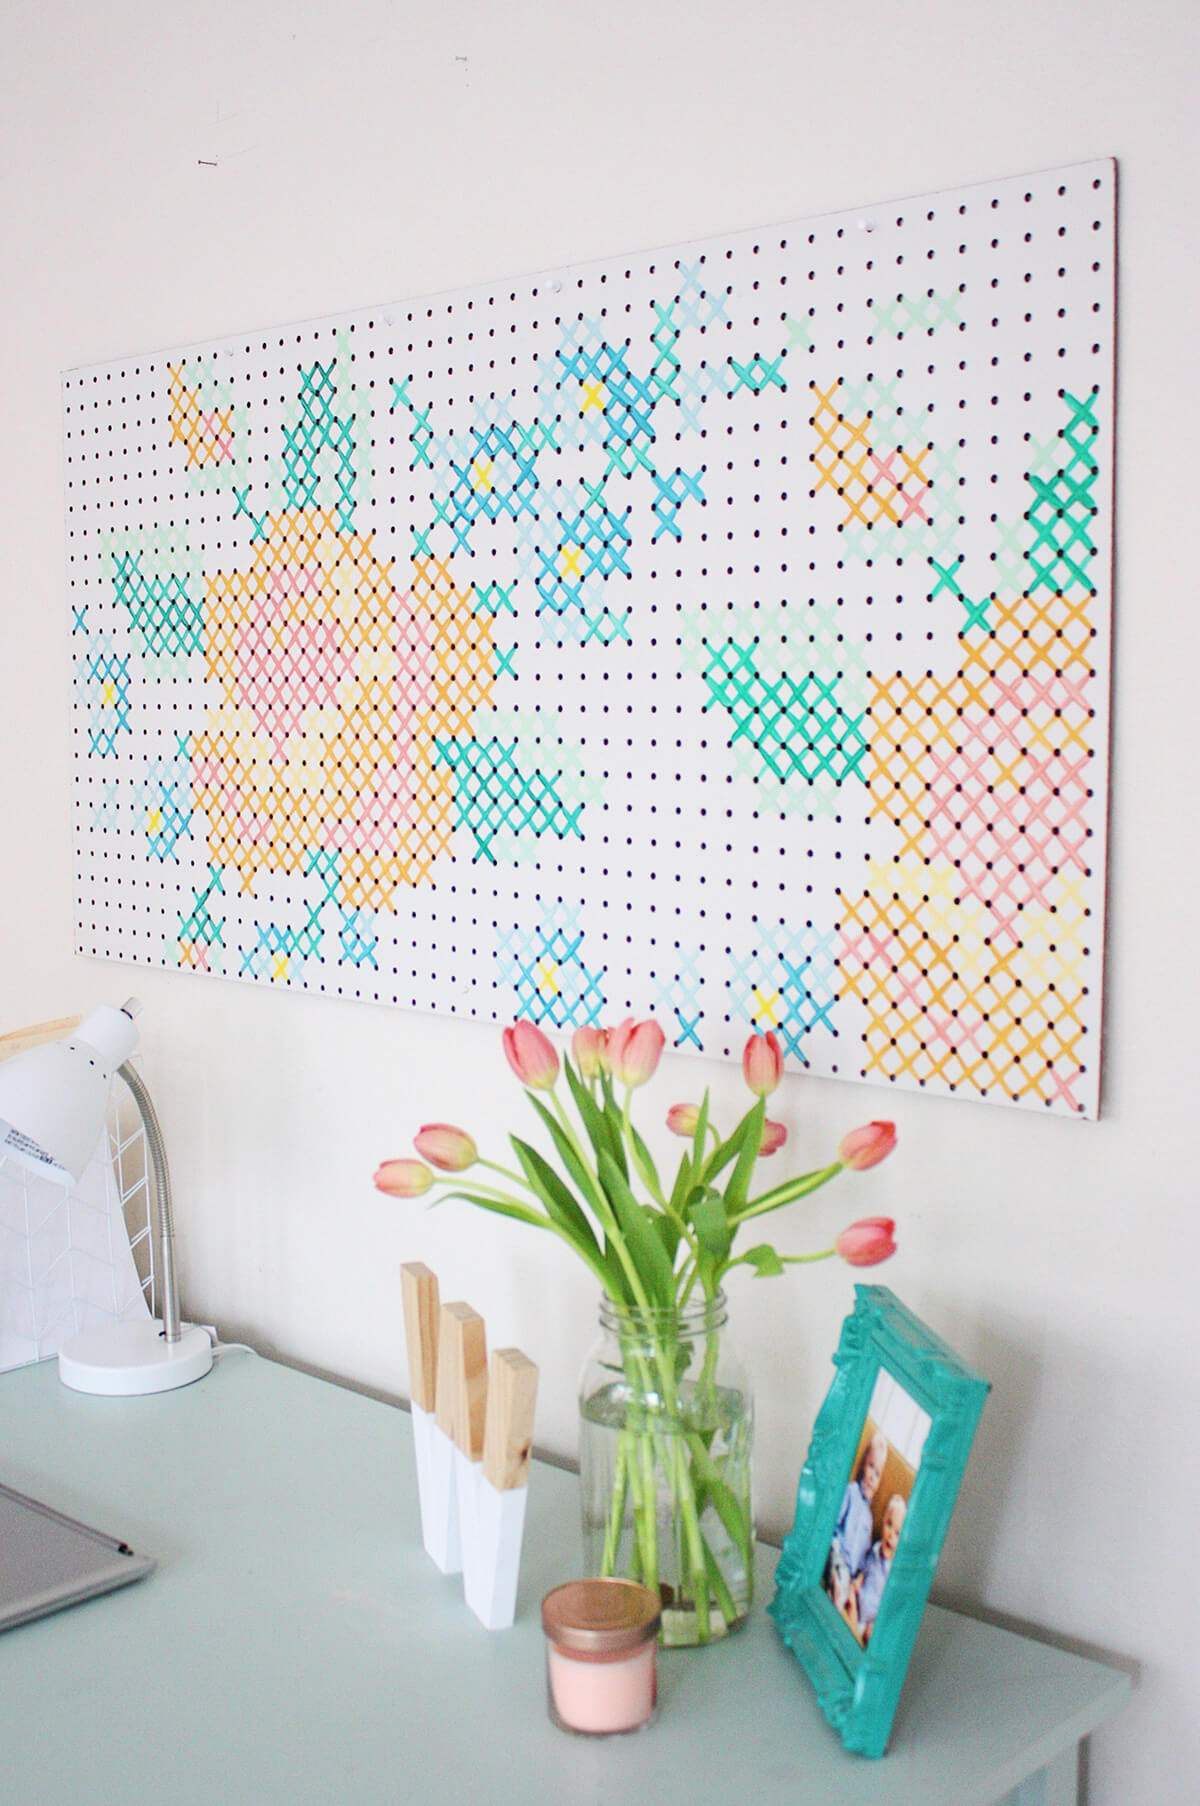 Other Decorative Pegboard Ideas for the Less Artistic